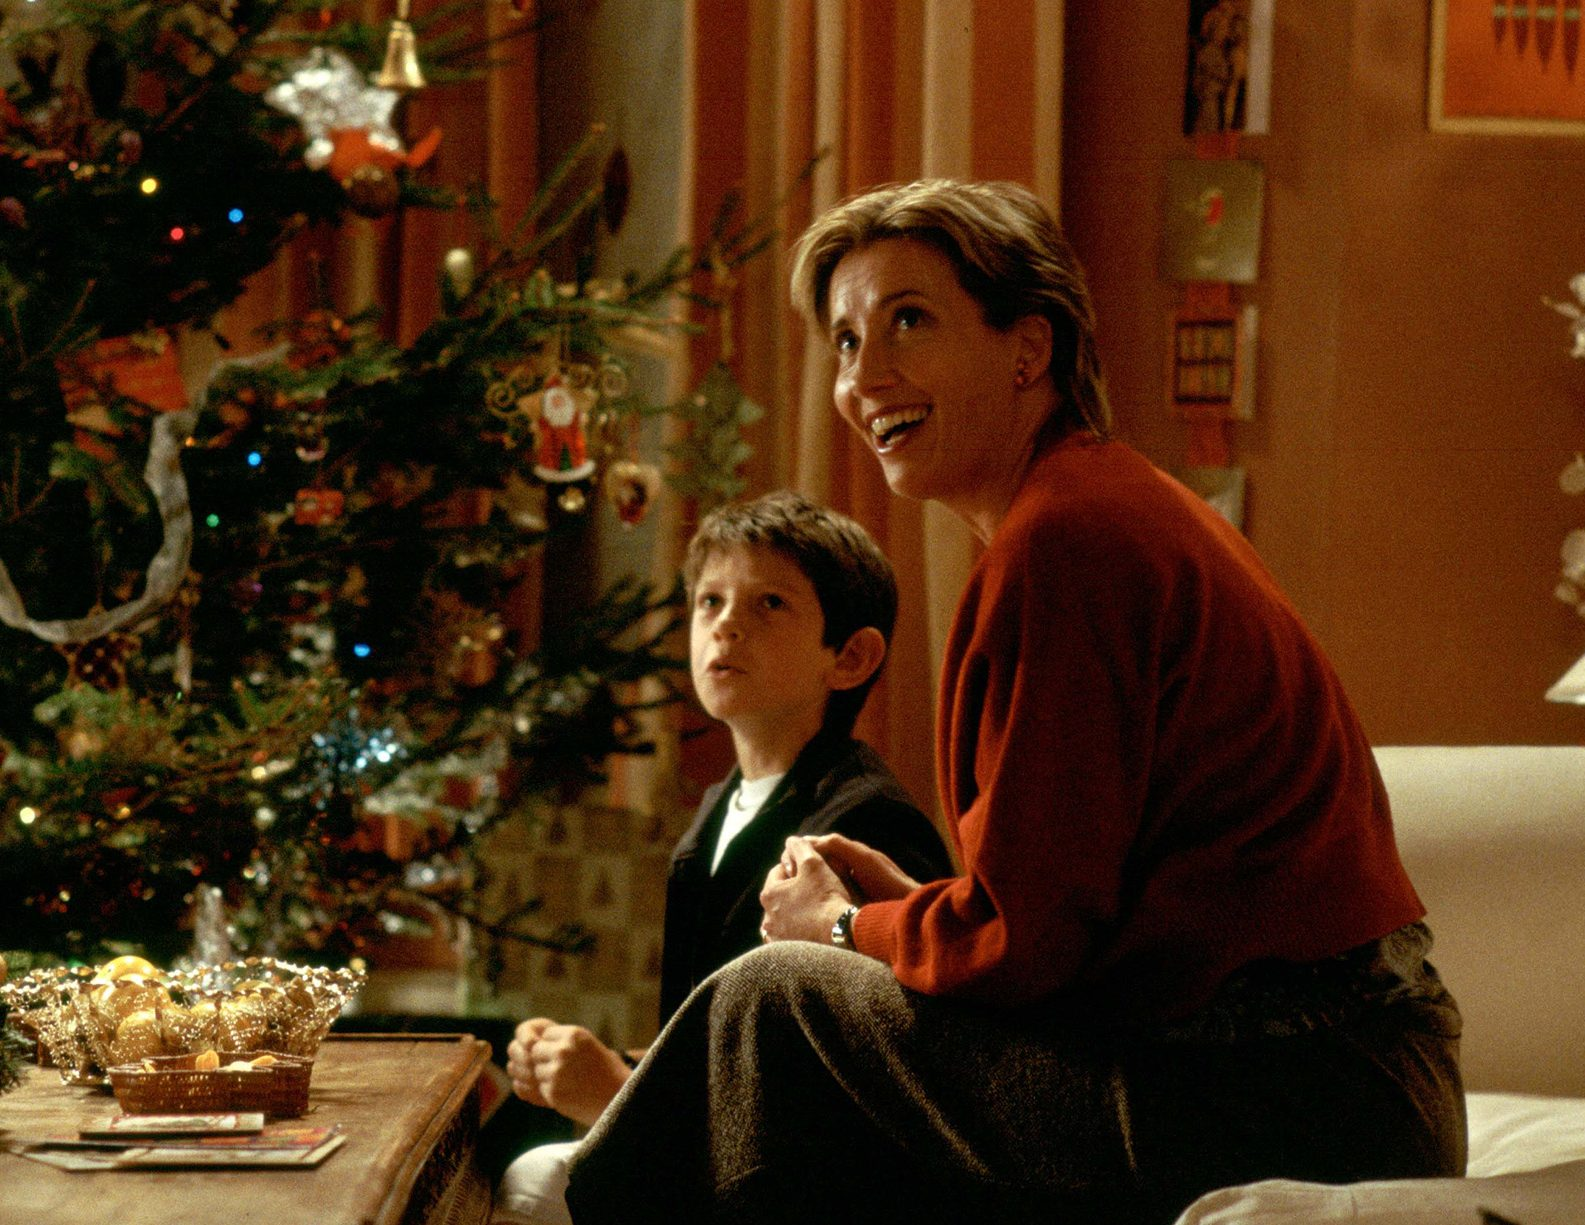 emma thompson lov eactually scene e1608647950635 20 Bizarre British Christmas Traditions That Confuse The Rest of The World